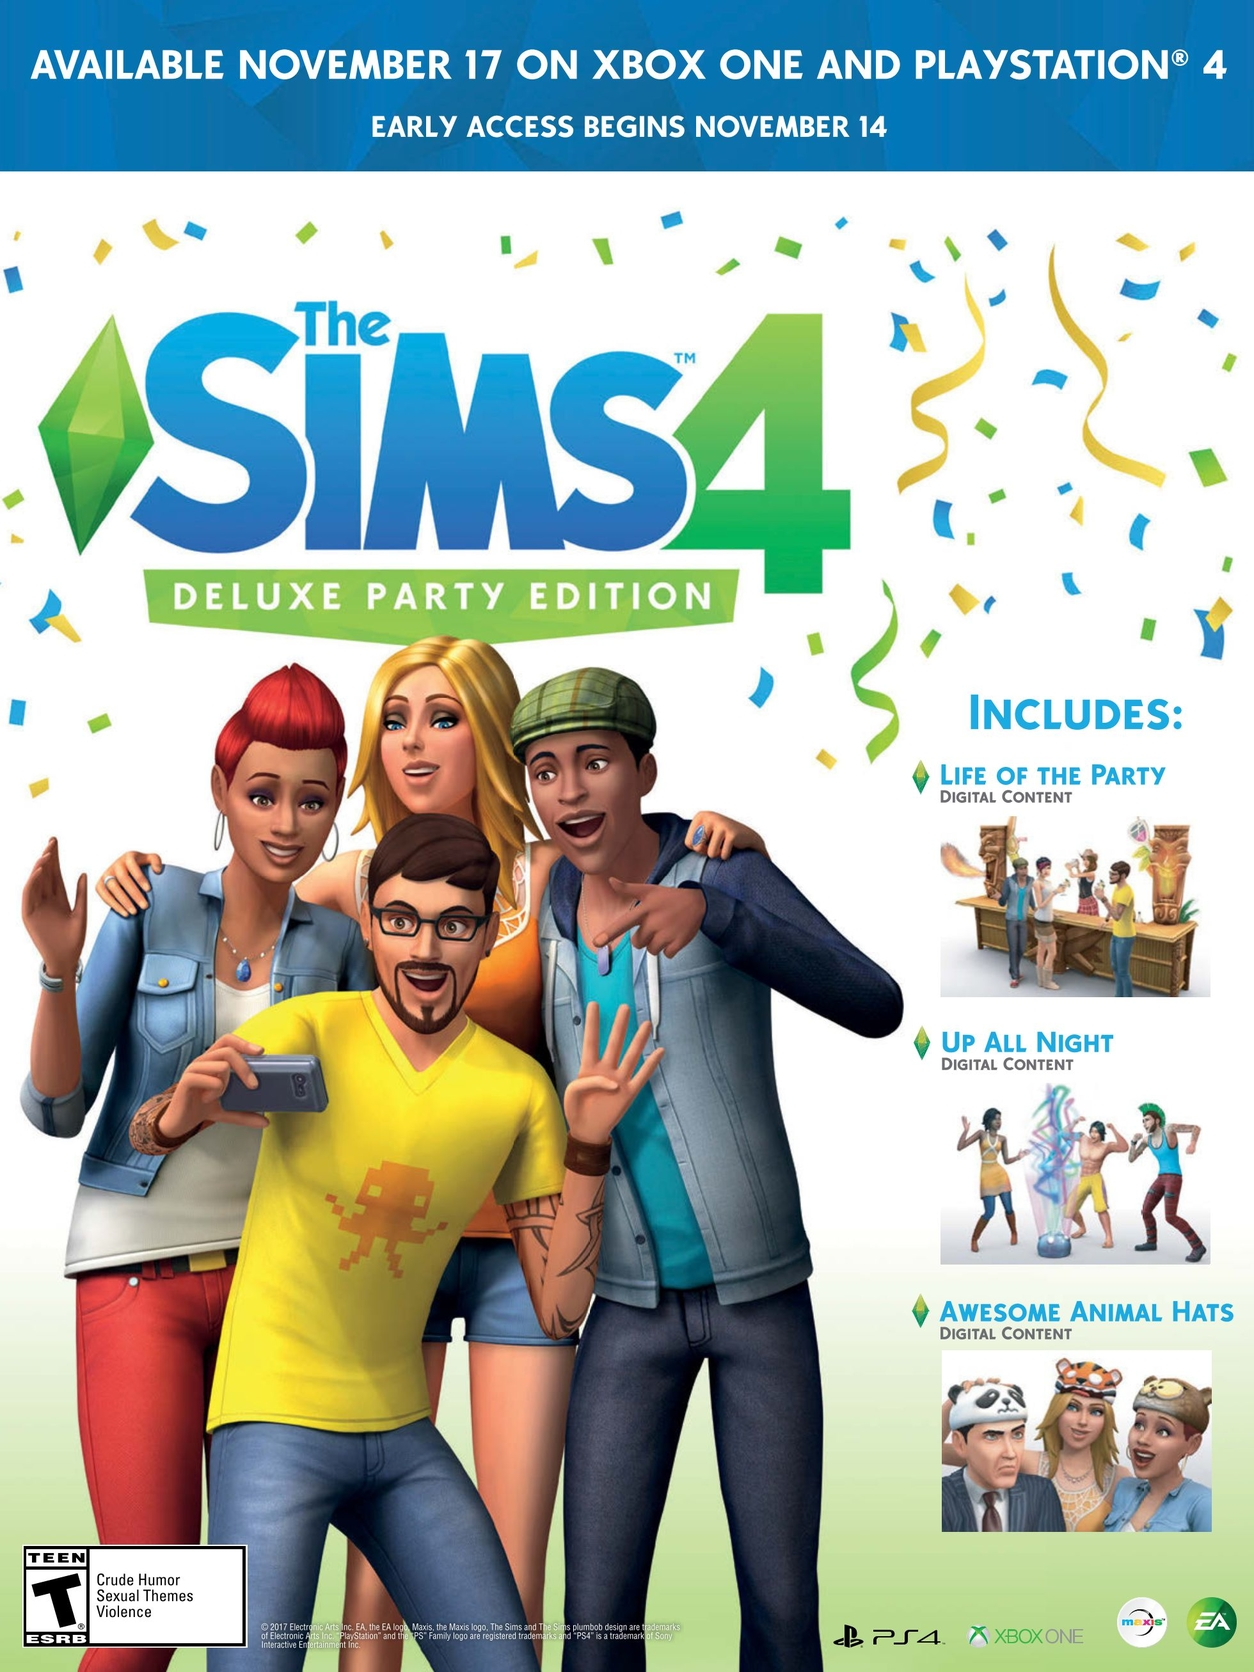 The Sims 4 Deluxe Party Edition 2017 Promotional Art Mobygames